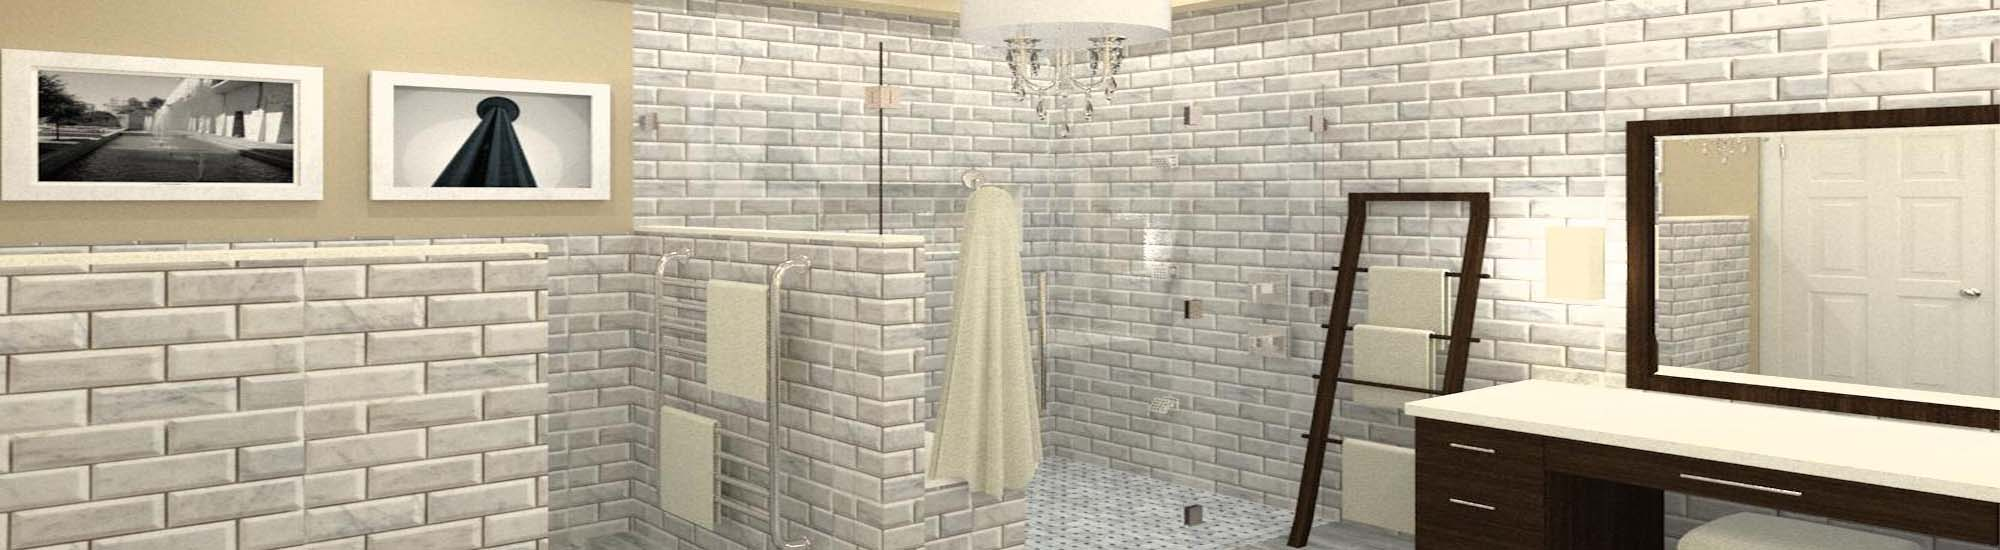 bathroom cad 1 design build pros - Bathroom Design Nj